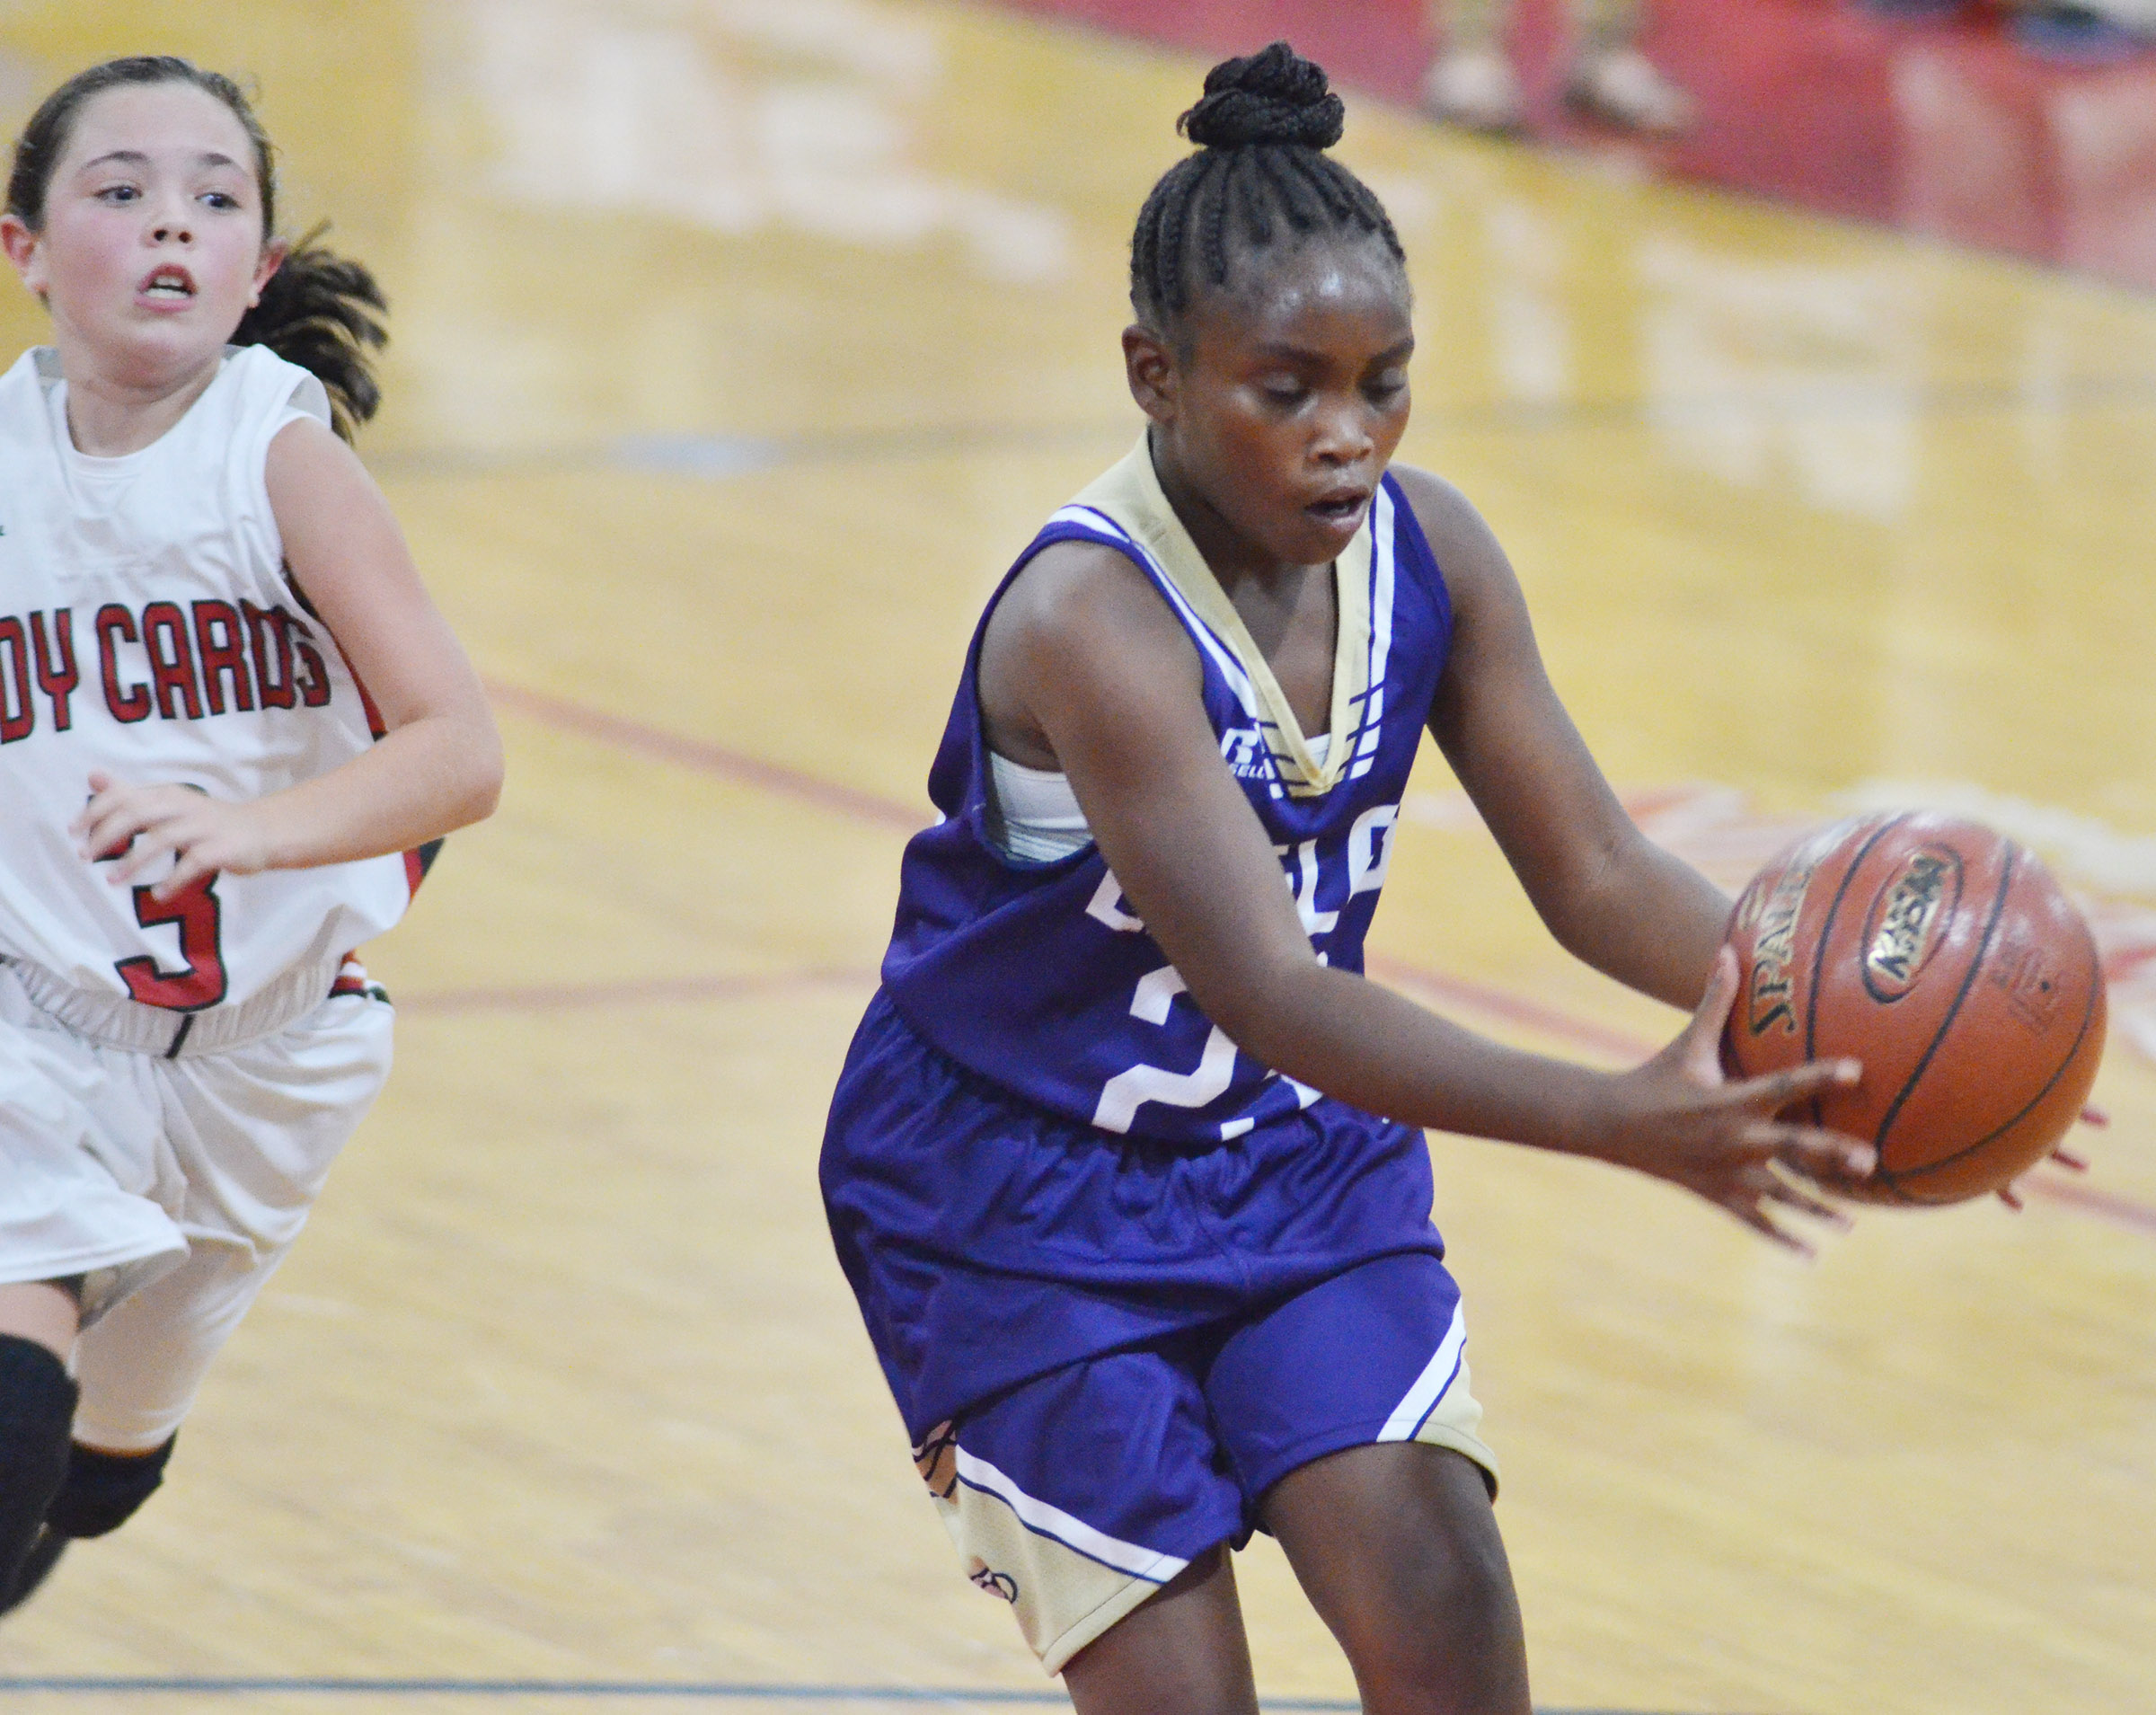 Campbellsville Elementary School fifth-grader Ta'Zaria Owens gets the ball.